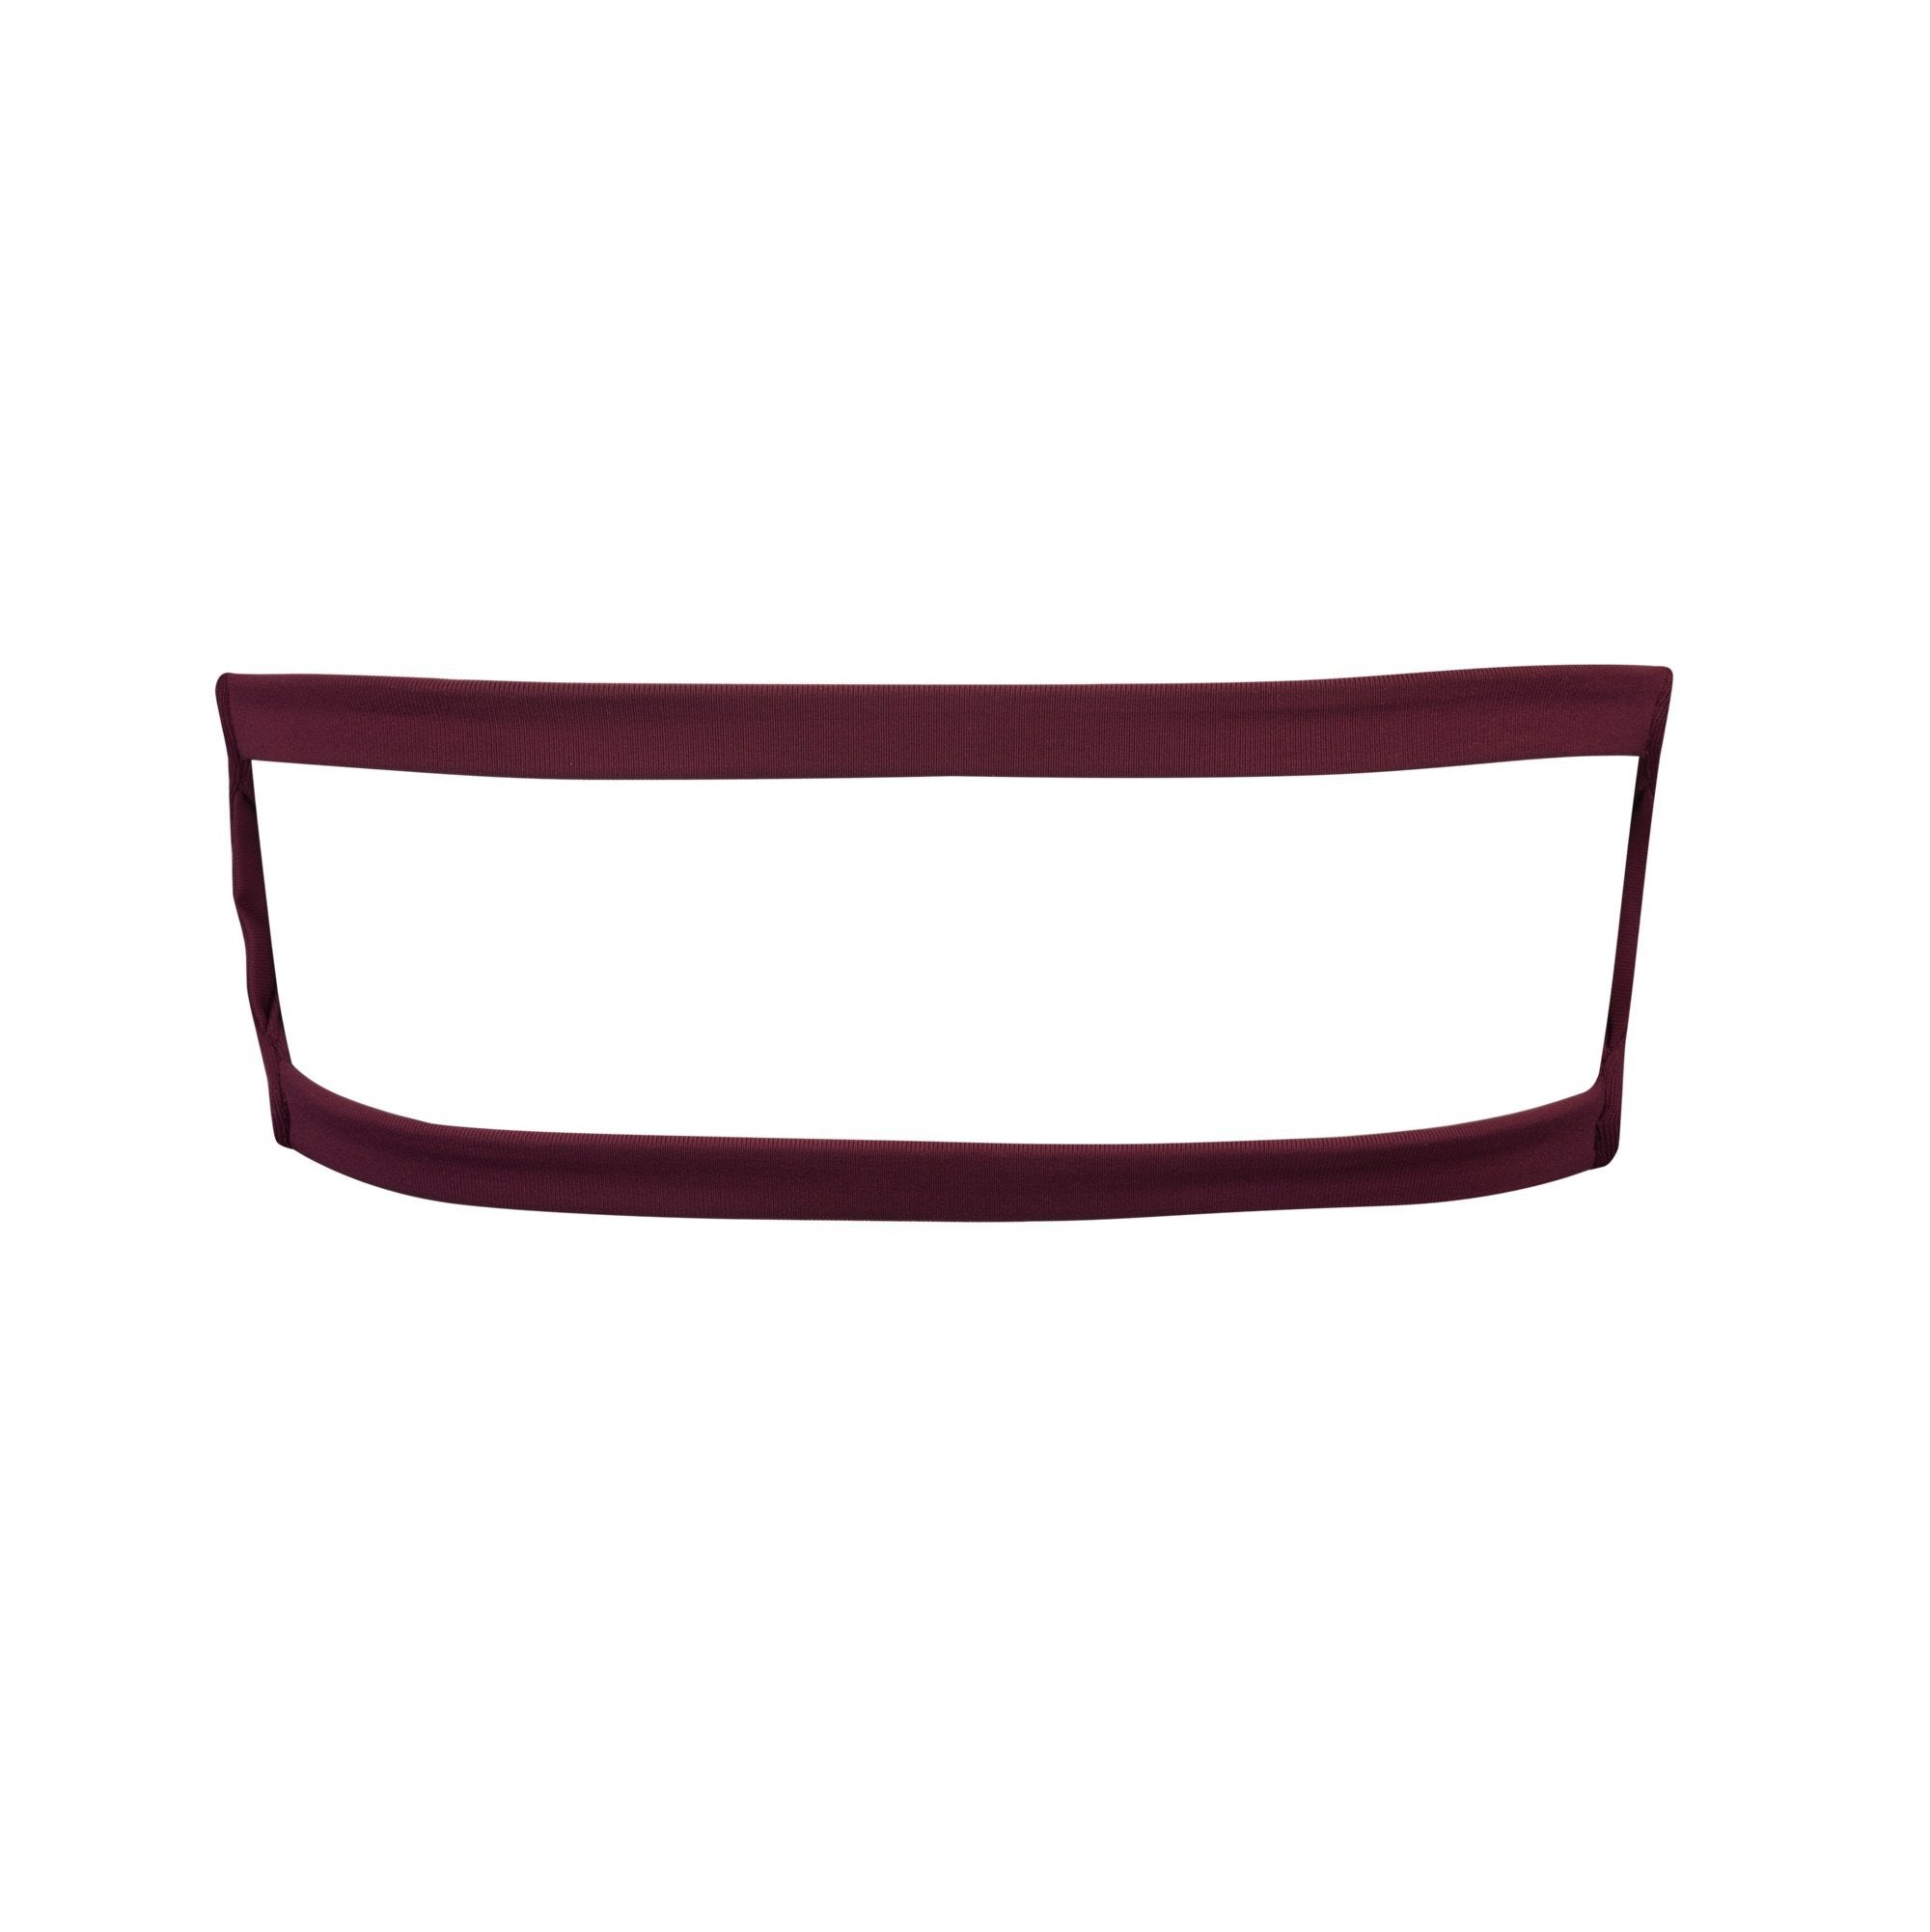 Bellini Bikini Top in Maroon | Beachwear | Tuhkana Swimwear | [product_tag] - Fair Bazaar Ethical Living